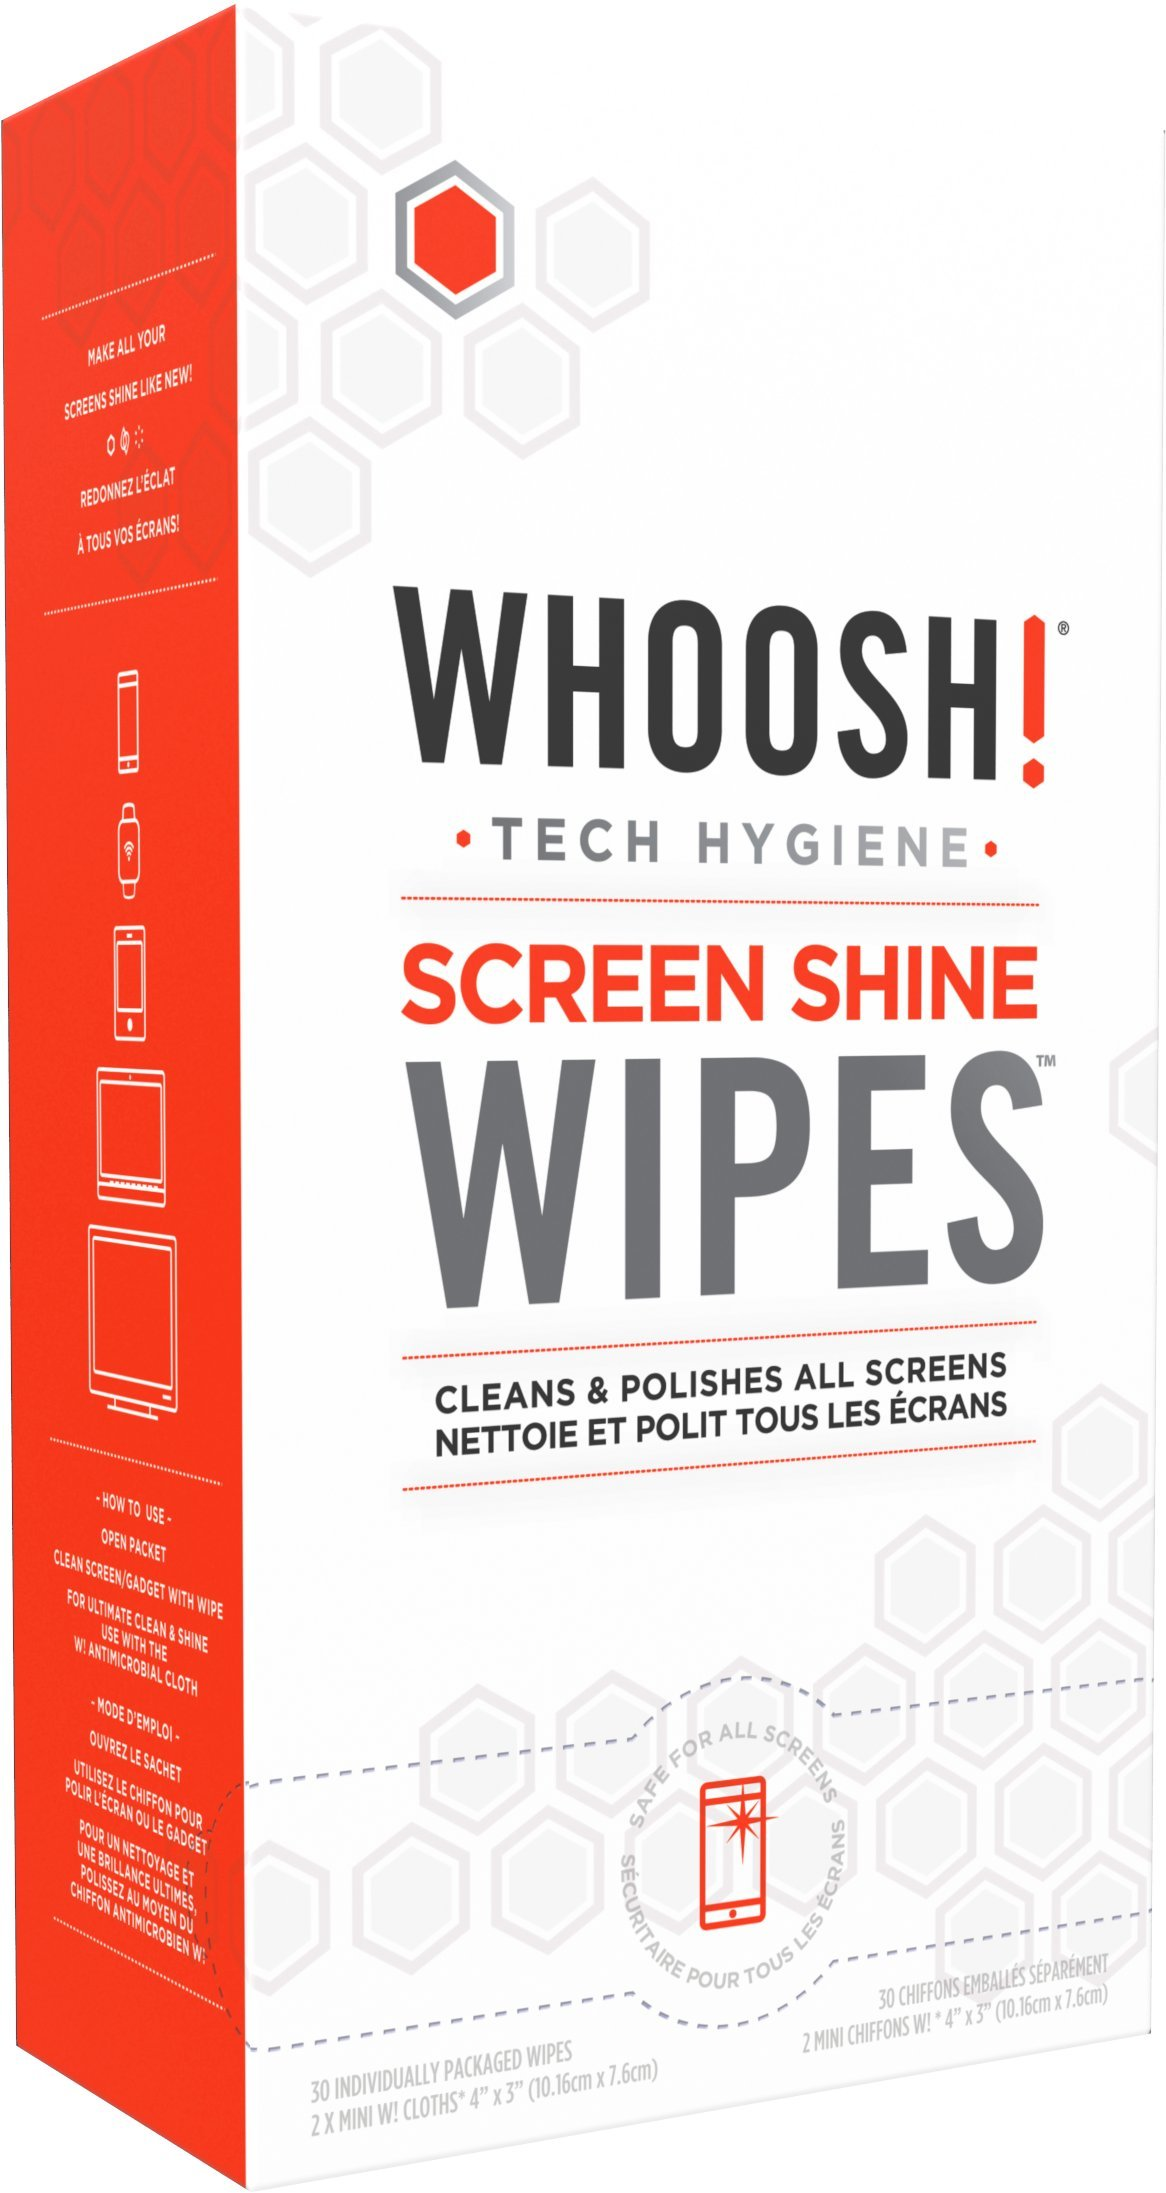 WHOOSH! Screen Cleaner WIPES - Safe for all screens - Smartphones, iPads, Eyeglasses, Kindle, Touchscreen & TVs (30 Count, Singles)